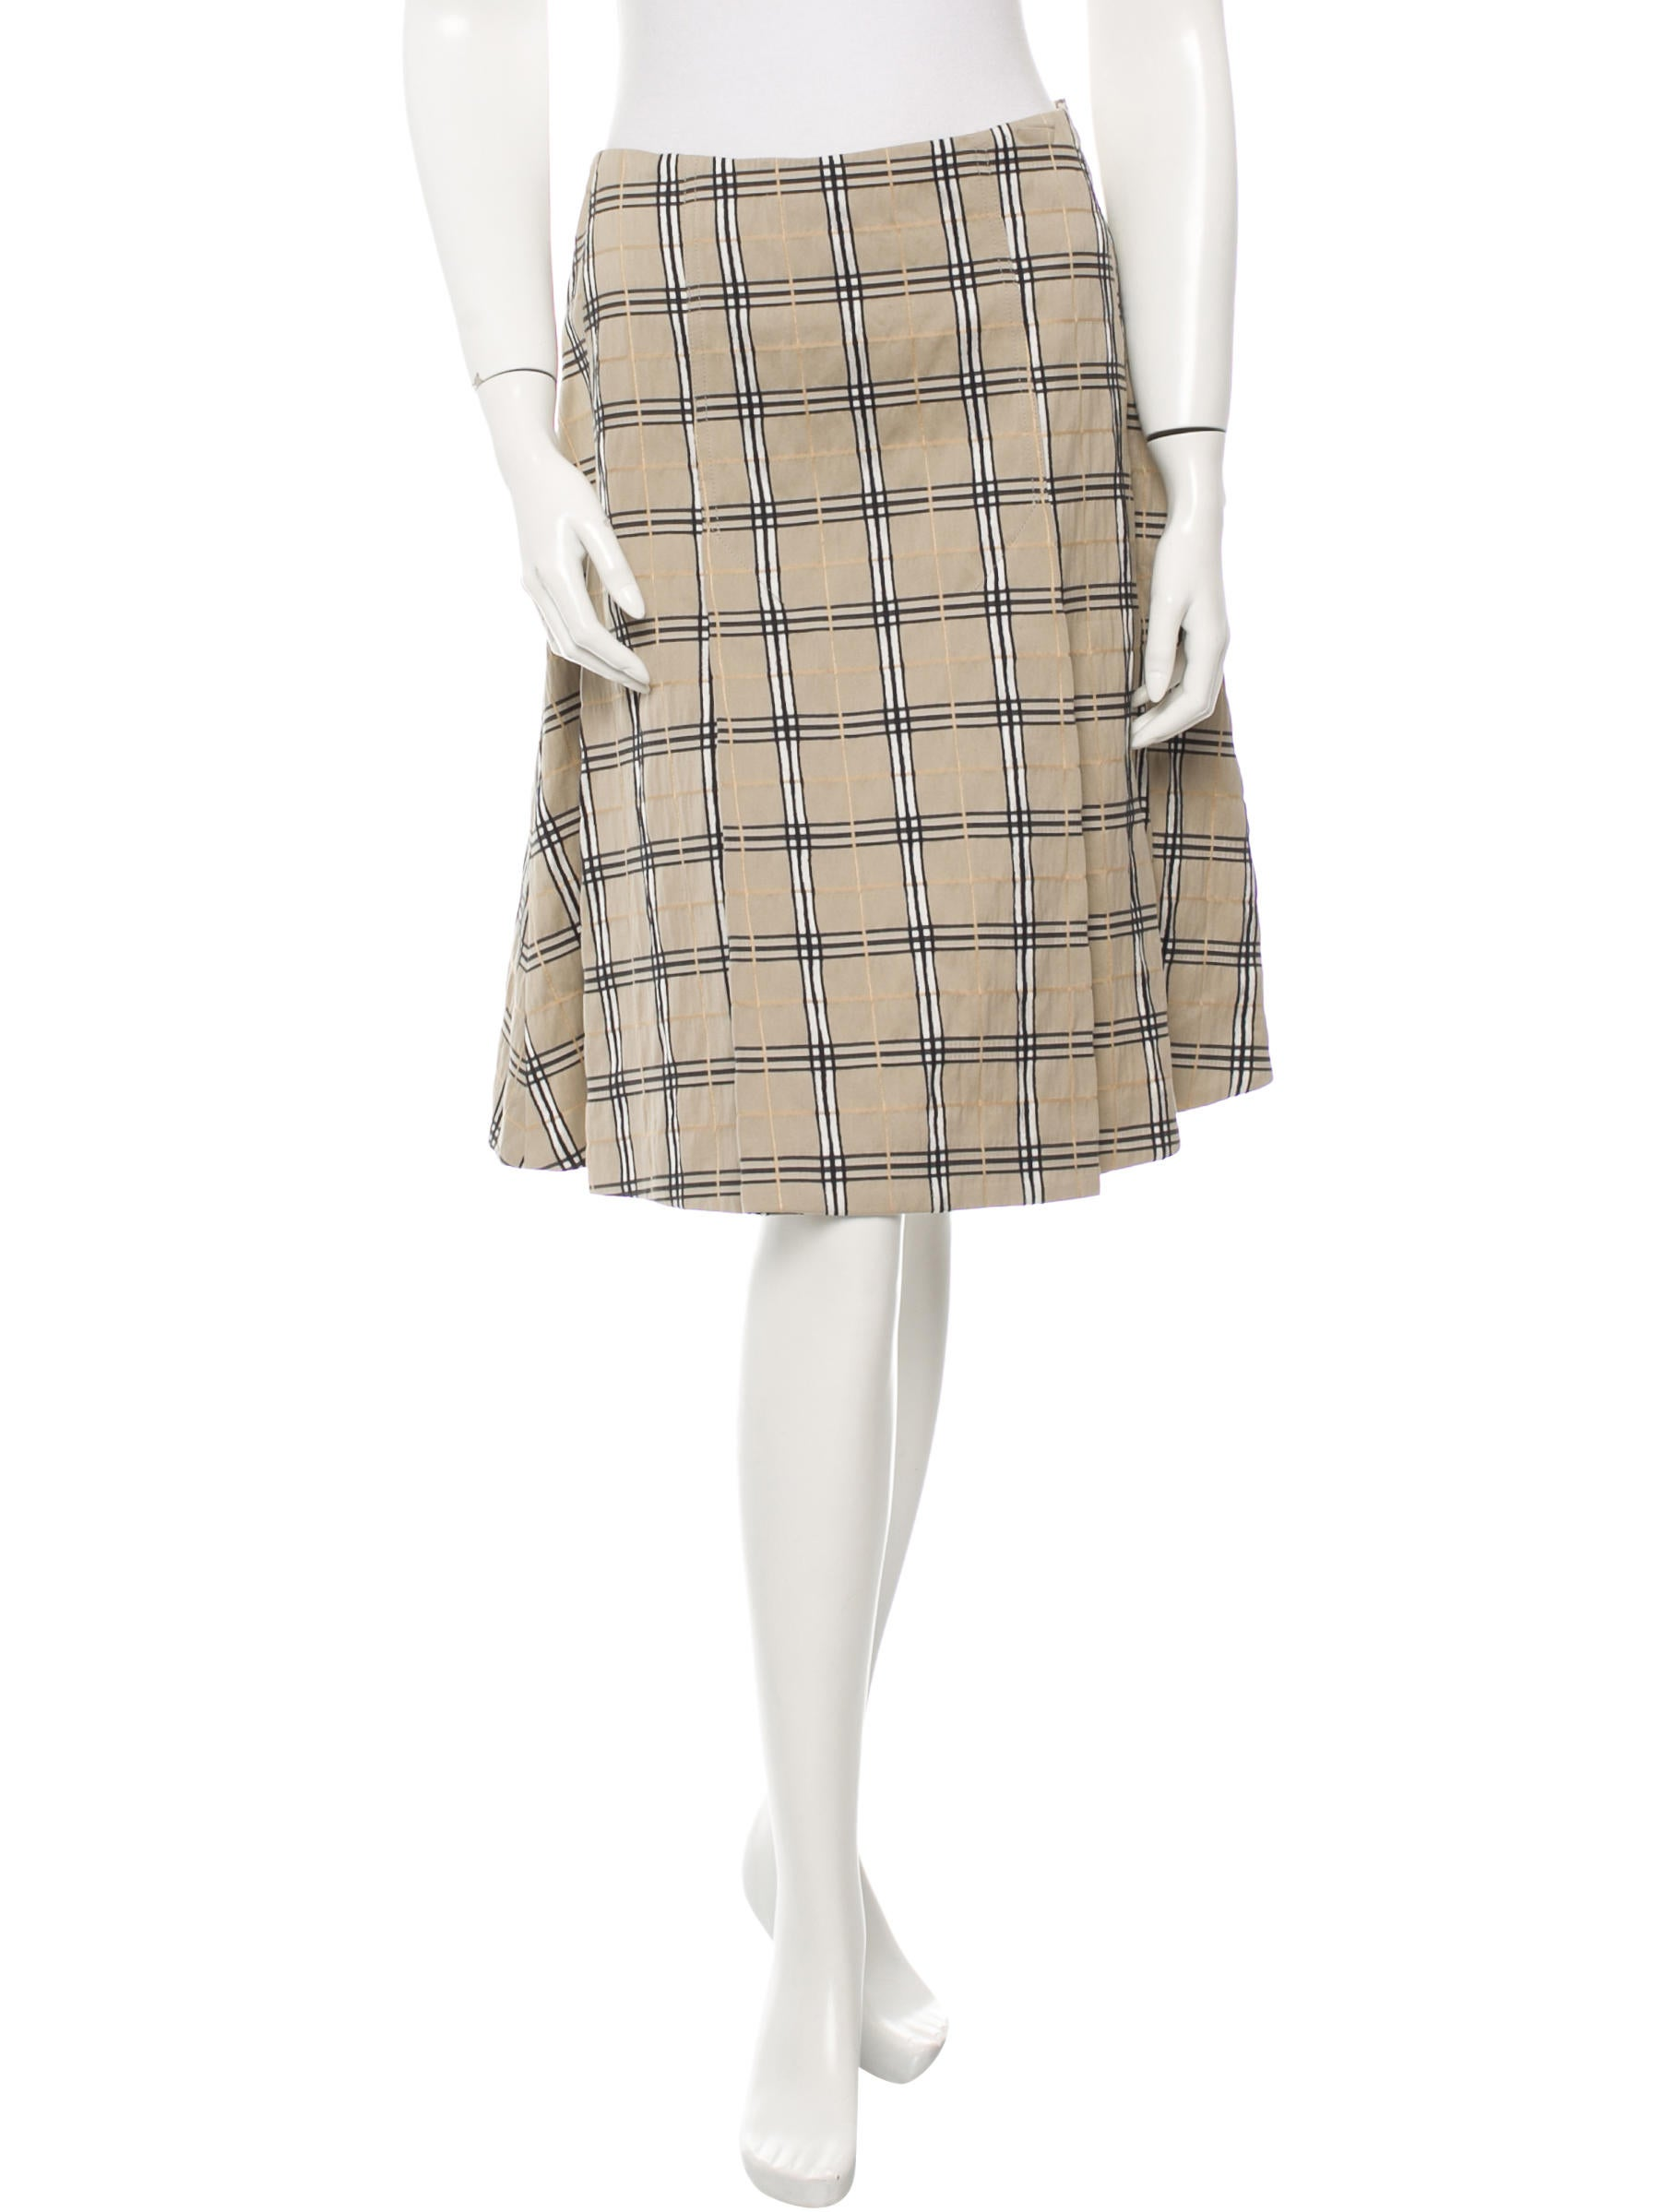 Beautiful BURBERRY of London Nova check pleated wool skirt with % viscose lining. Pre-owned, looks new, in excellent condition inside and out. The color may slightly vary due to lighting effects.